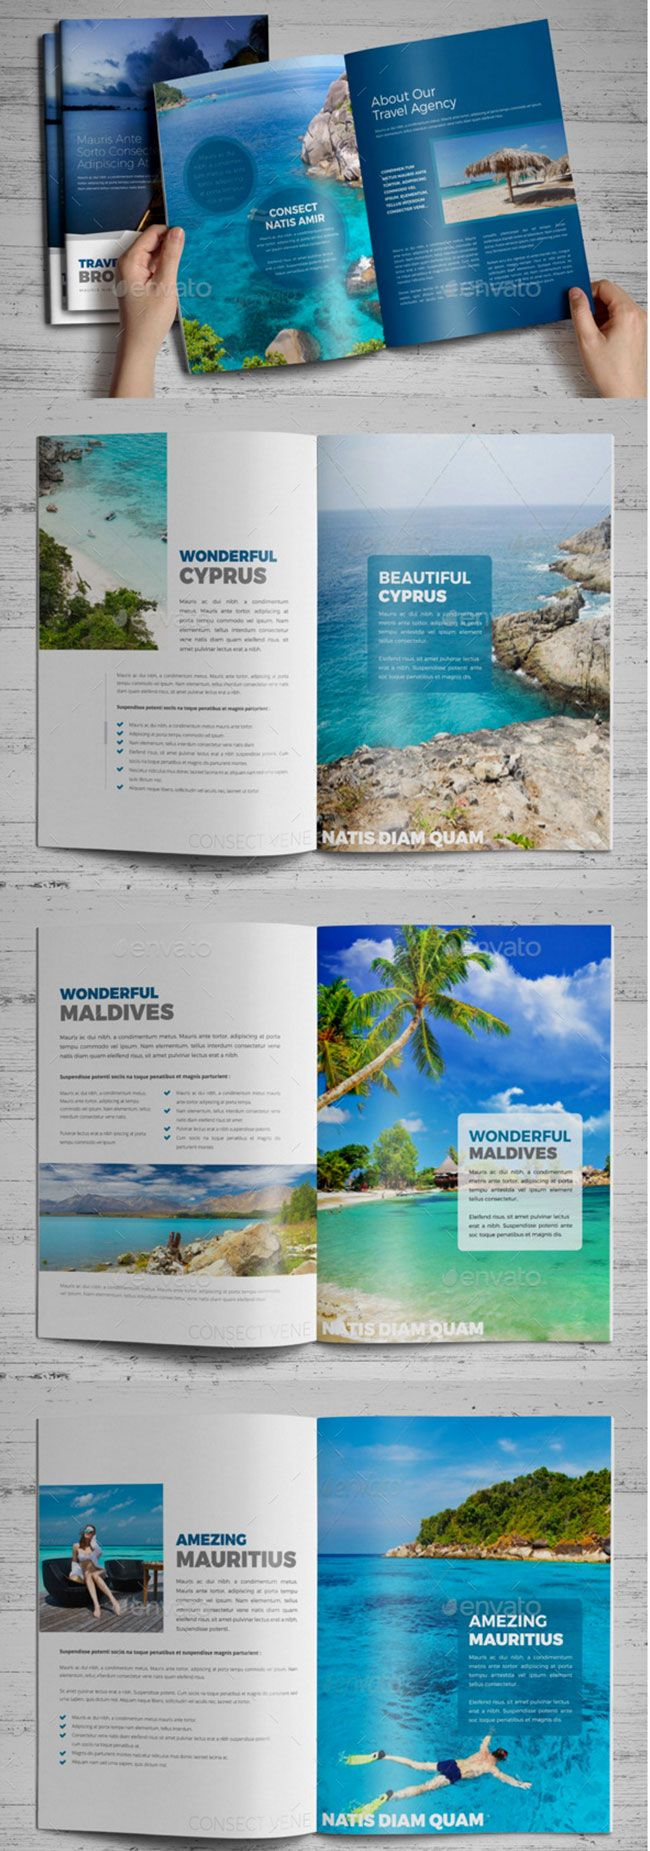 Showcase 40 best travel and tourist brochure design for Cruise brochure template